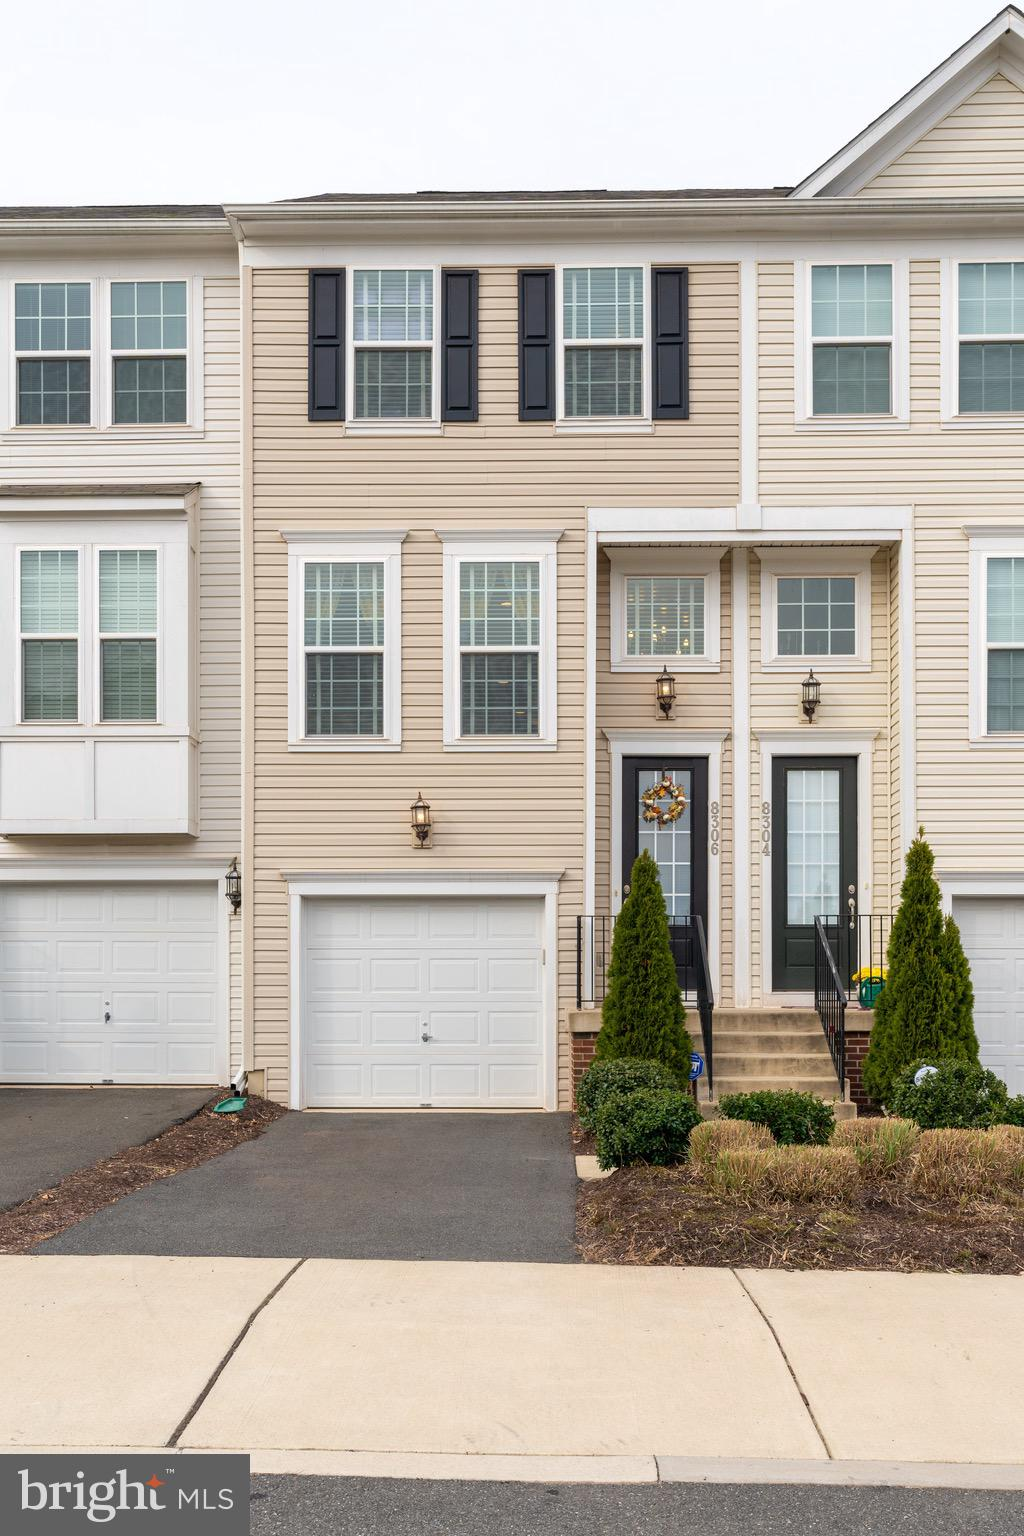 Move-in ready home!  Beautiful townhome offers 1 car garage, 3 bedrooms, 2 full bath.  Spacious and